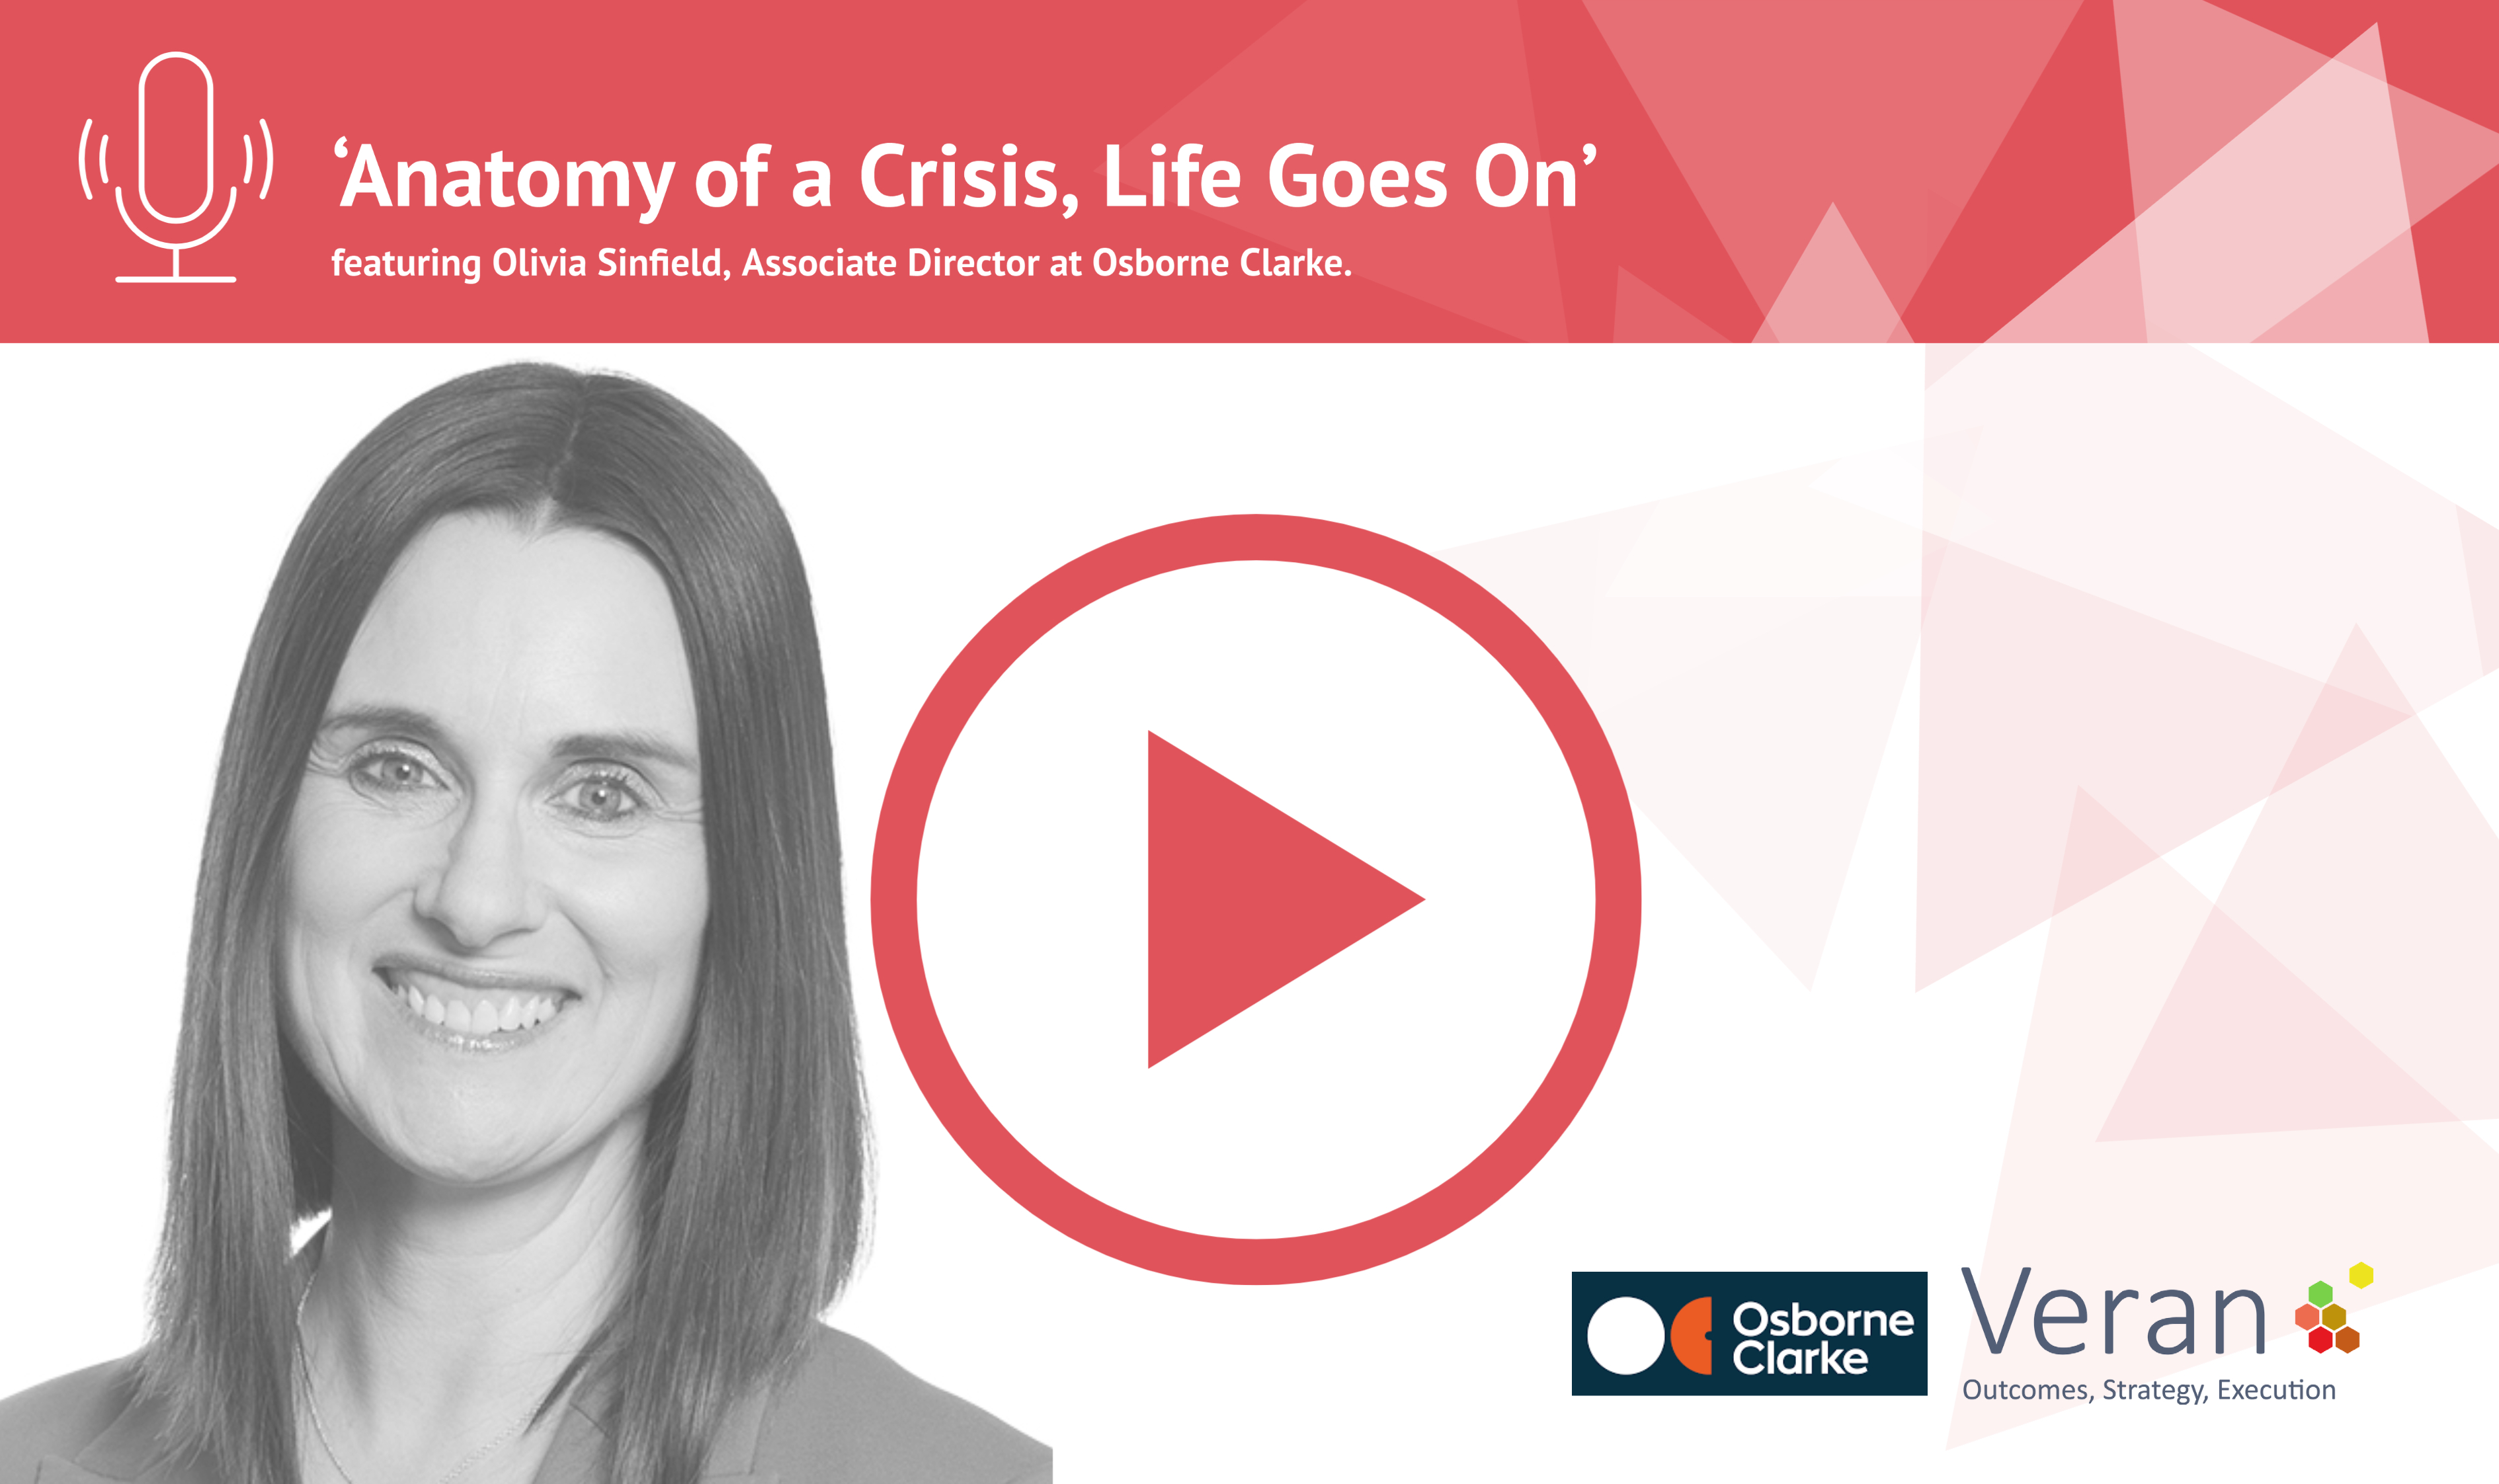 Anatomy of a Crisis, Life Goes On with Olivia Sinfield, Associate Director at Osborne Clarke